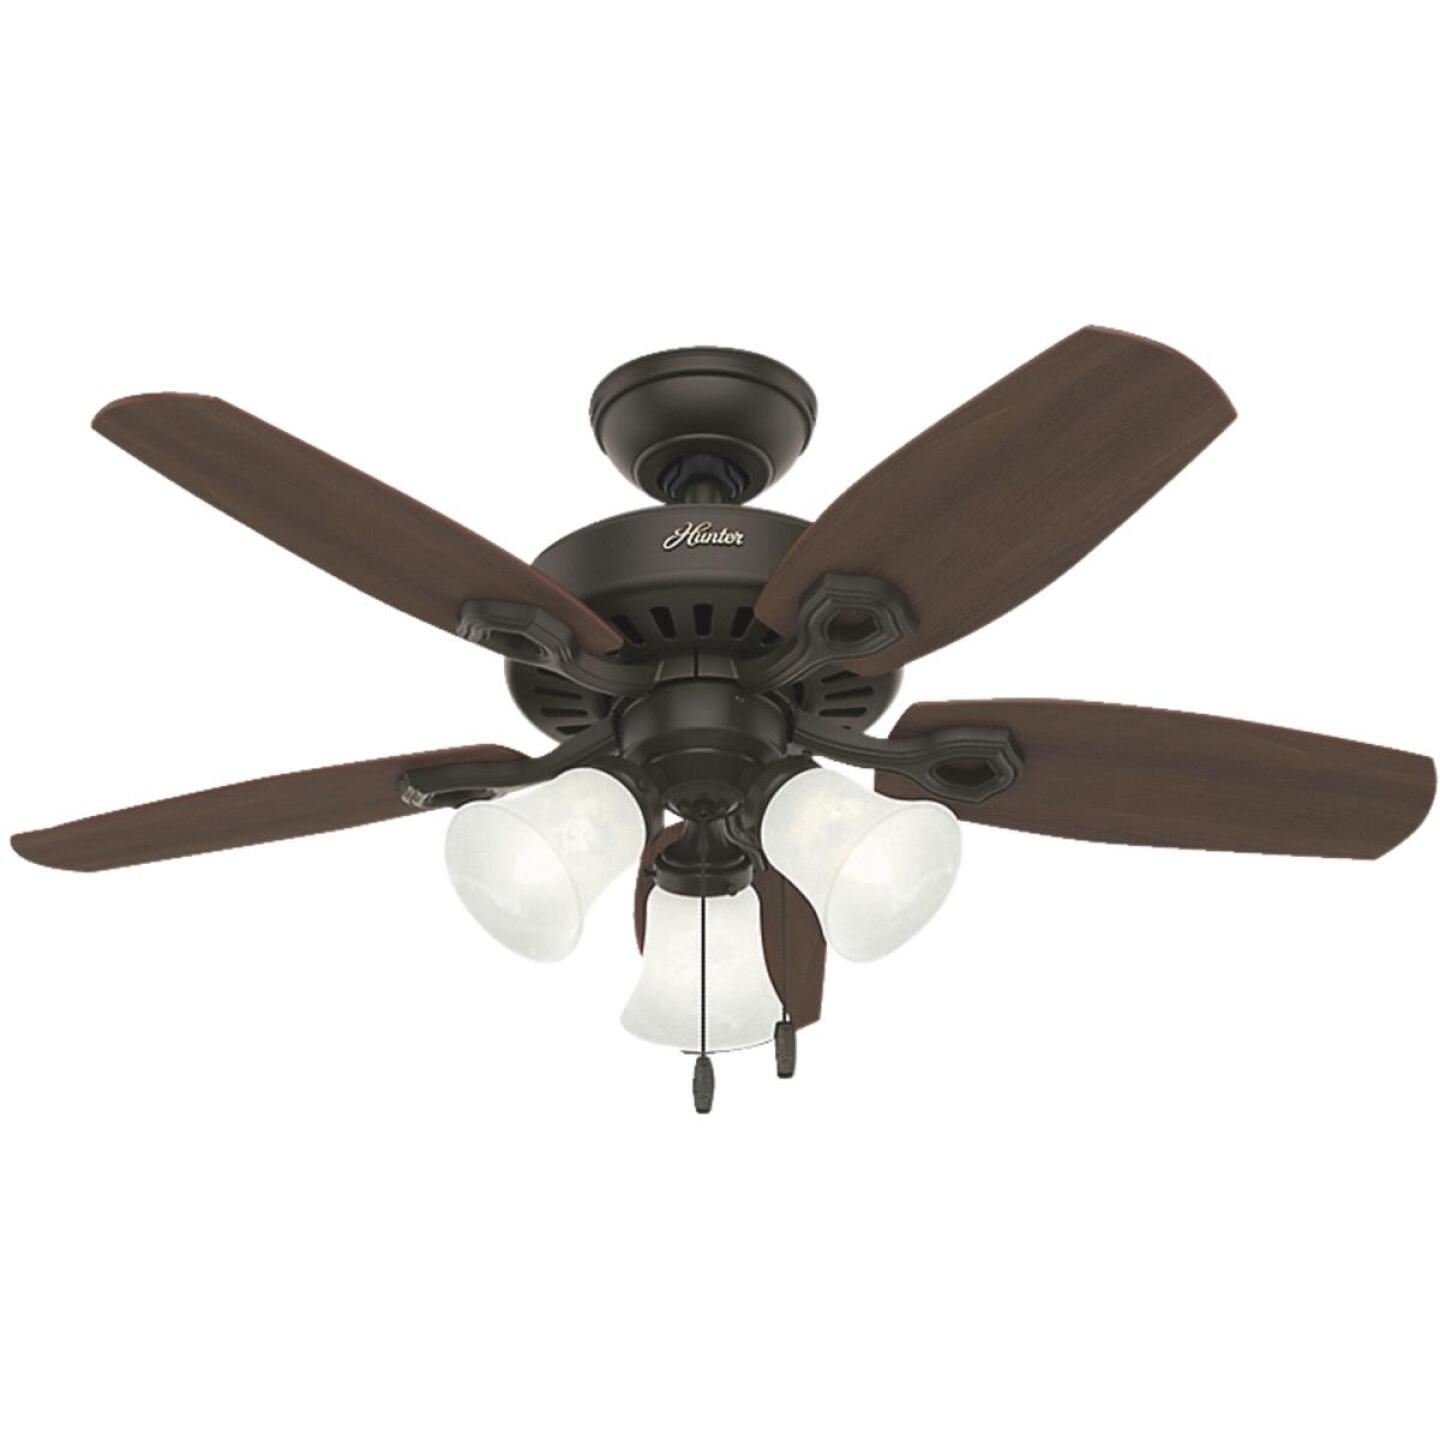 Hunter Builder Small Room 42 In. New Bronze Ceiling Fan with Light Kit Image 1